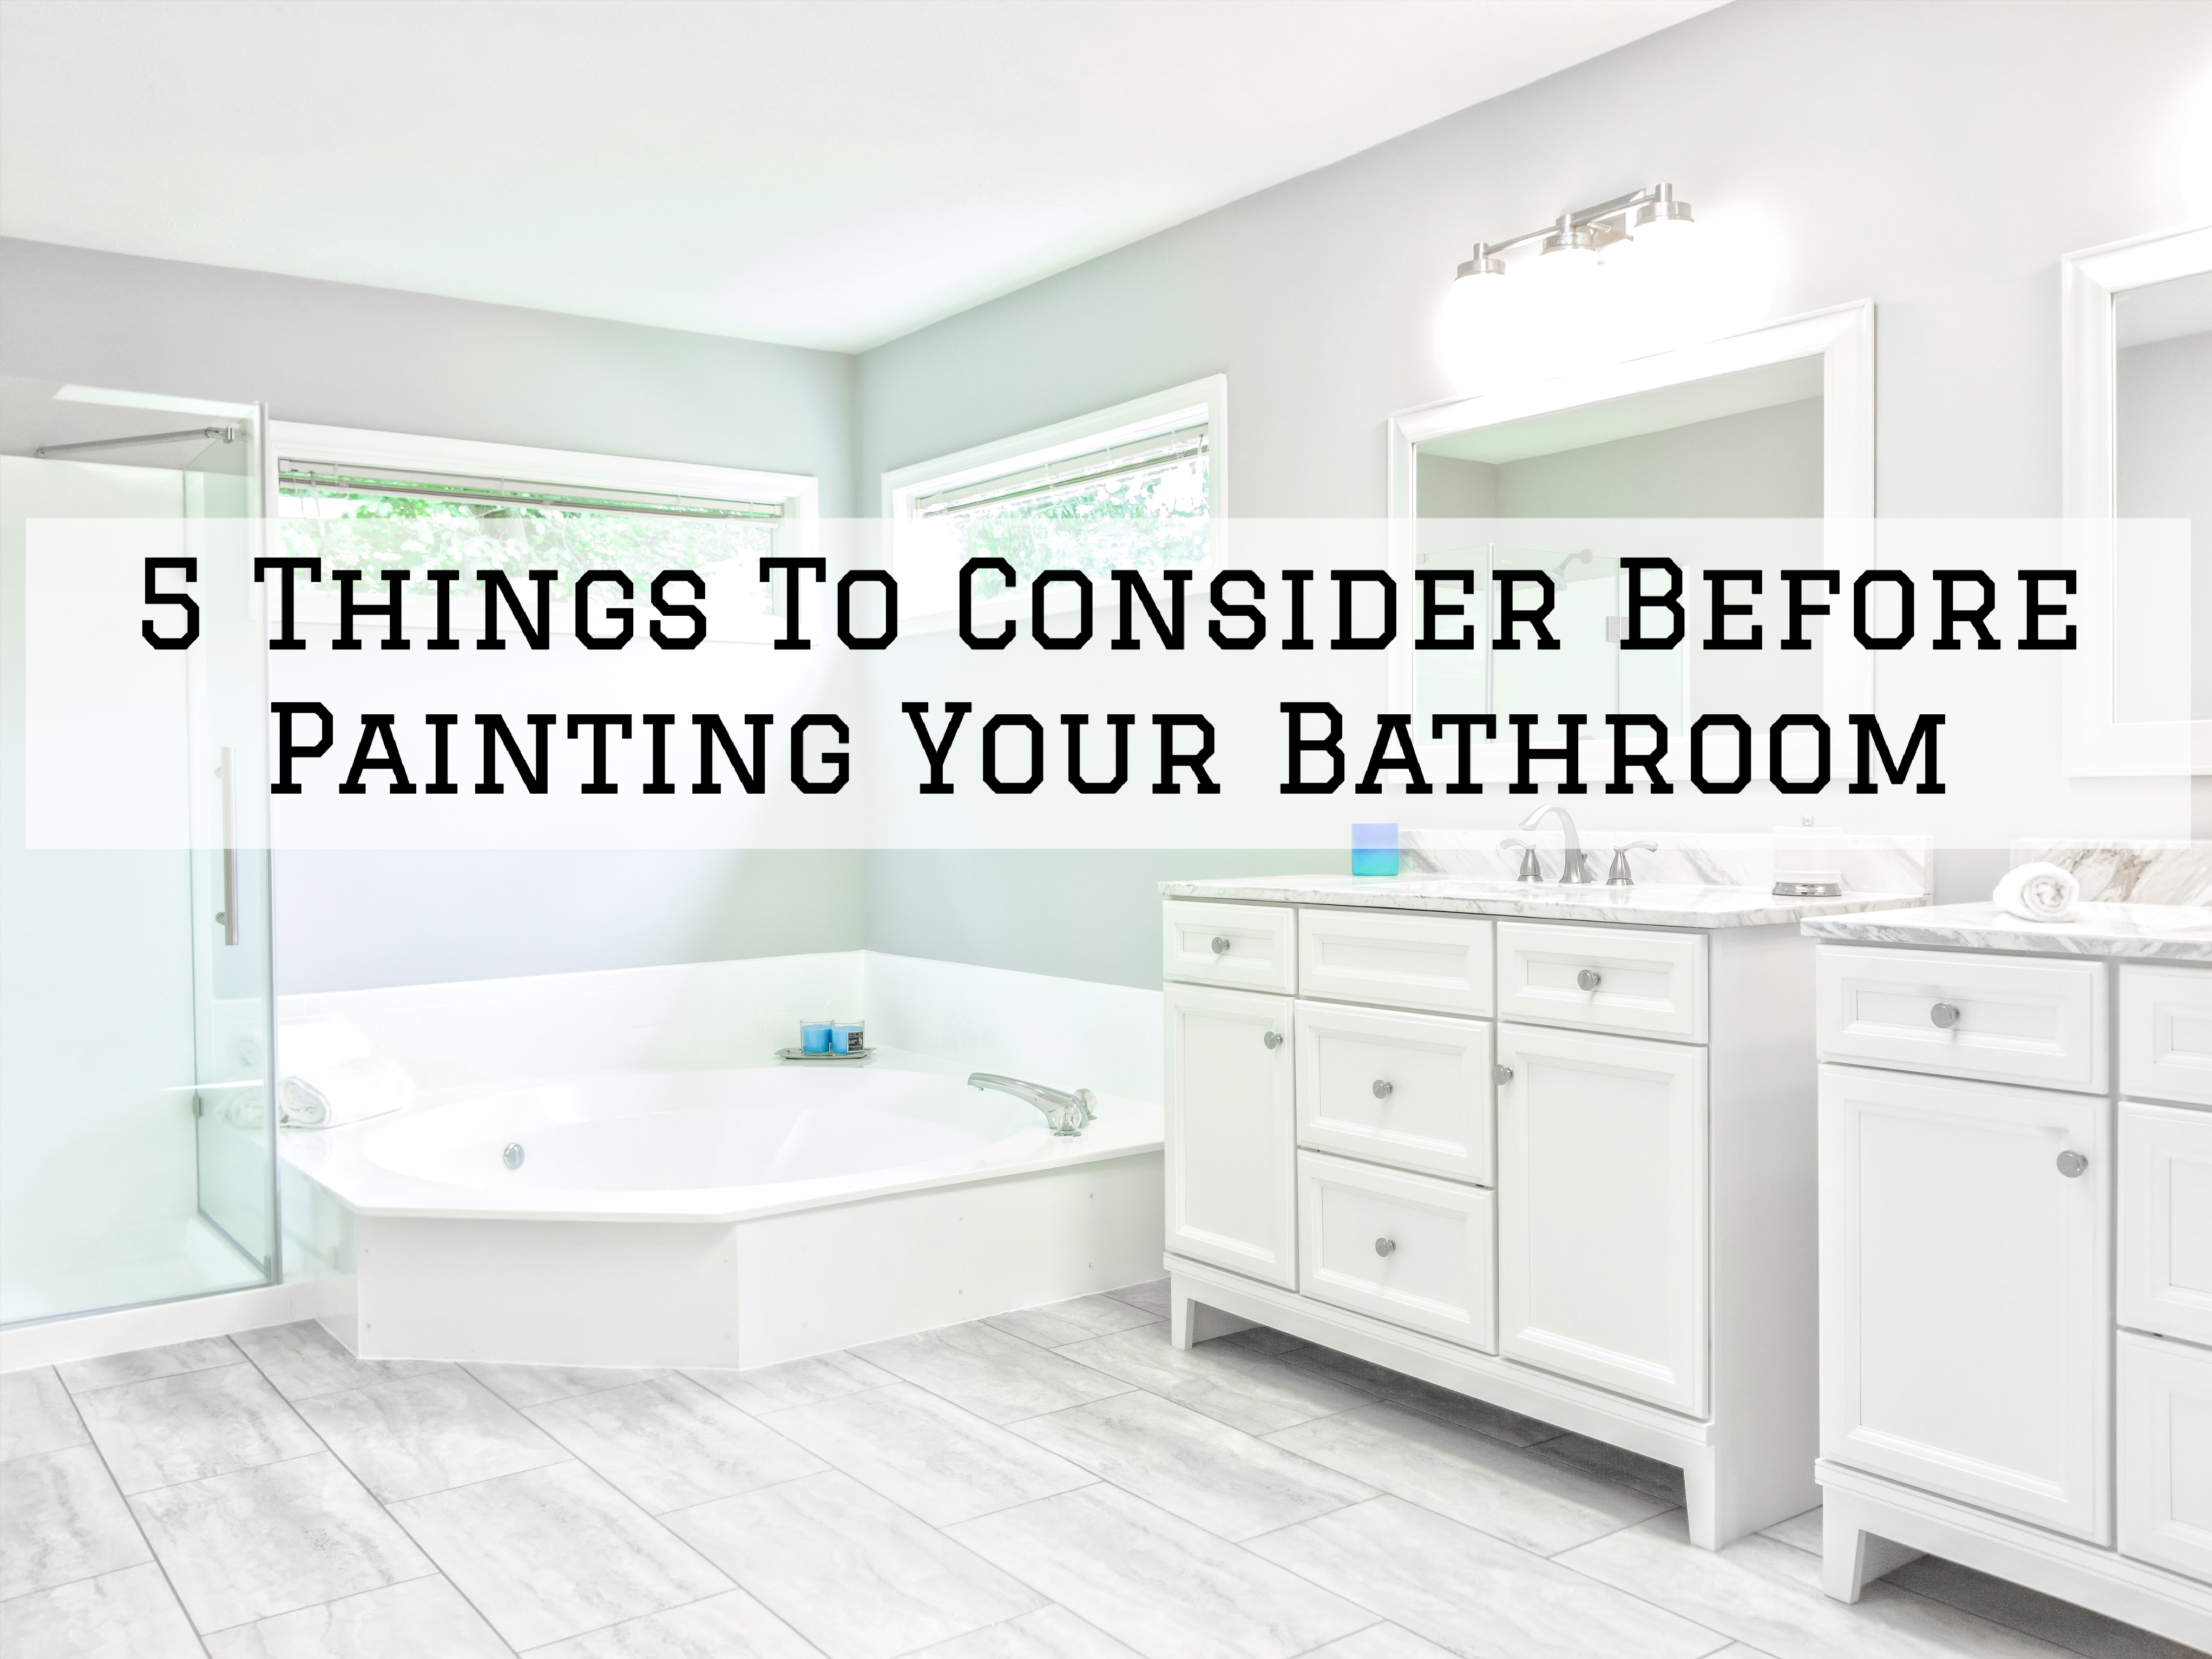 5 Things To Consider Before Painting Your Bathroom in Omaha, NE